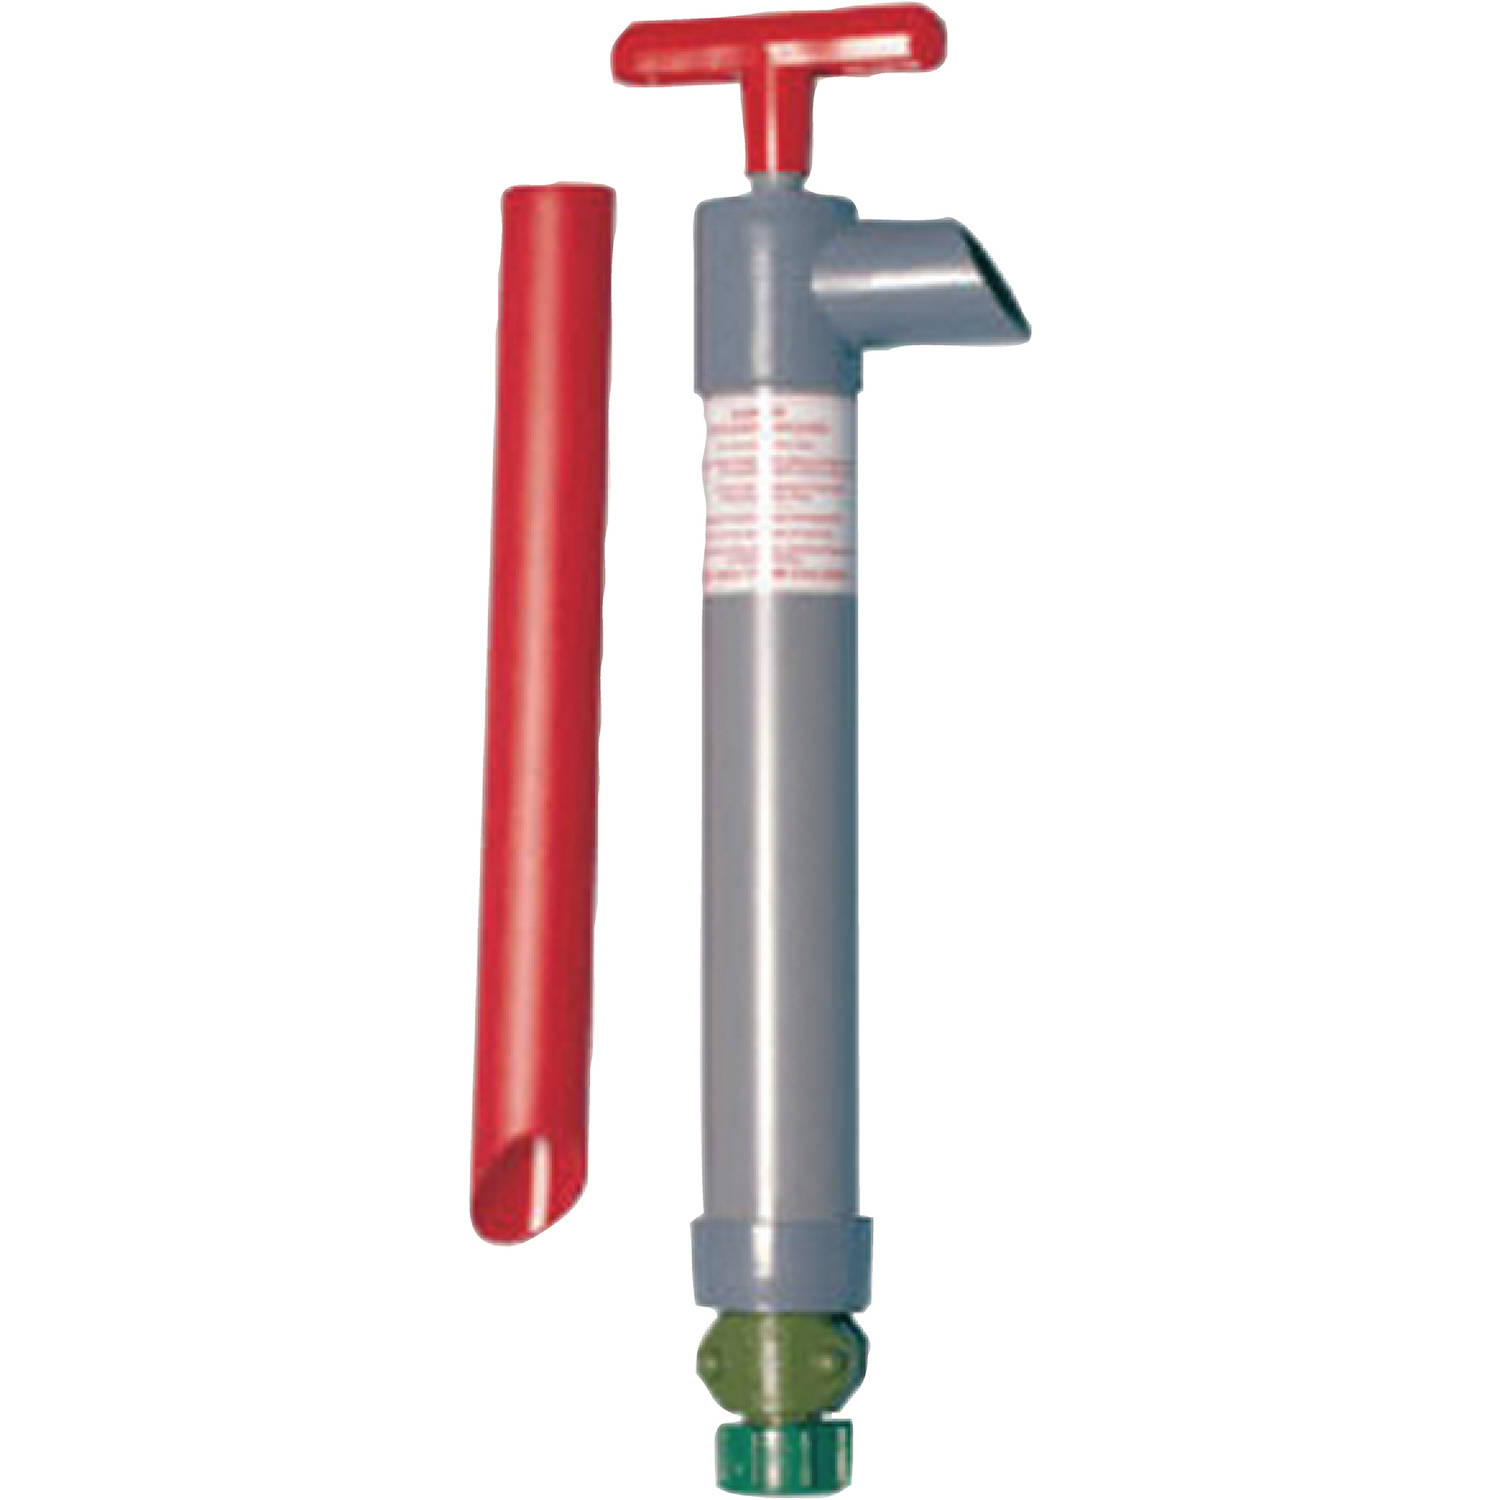 "Beckson 212PGA Handy-Mate Crank Case Pump, 1-1 2"" x 12-3 4"" by BECKSON MARINE INC."